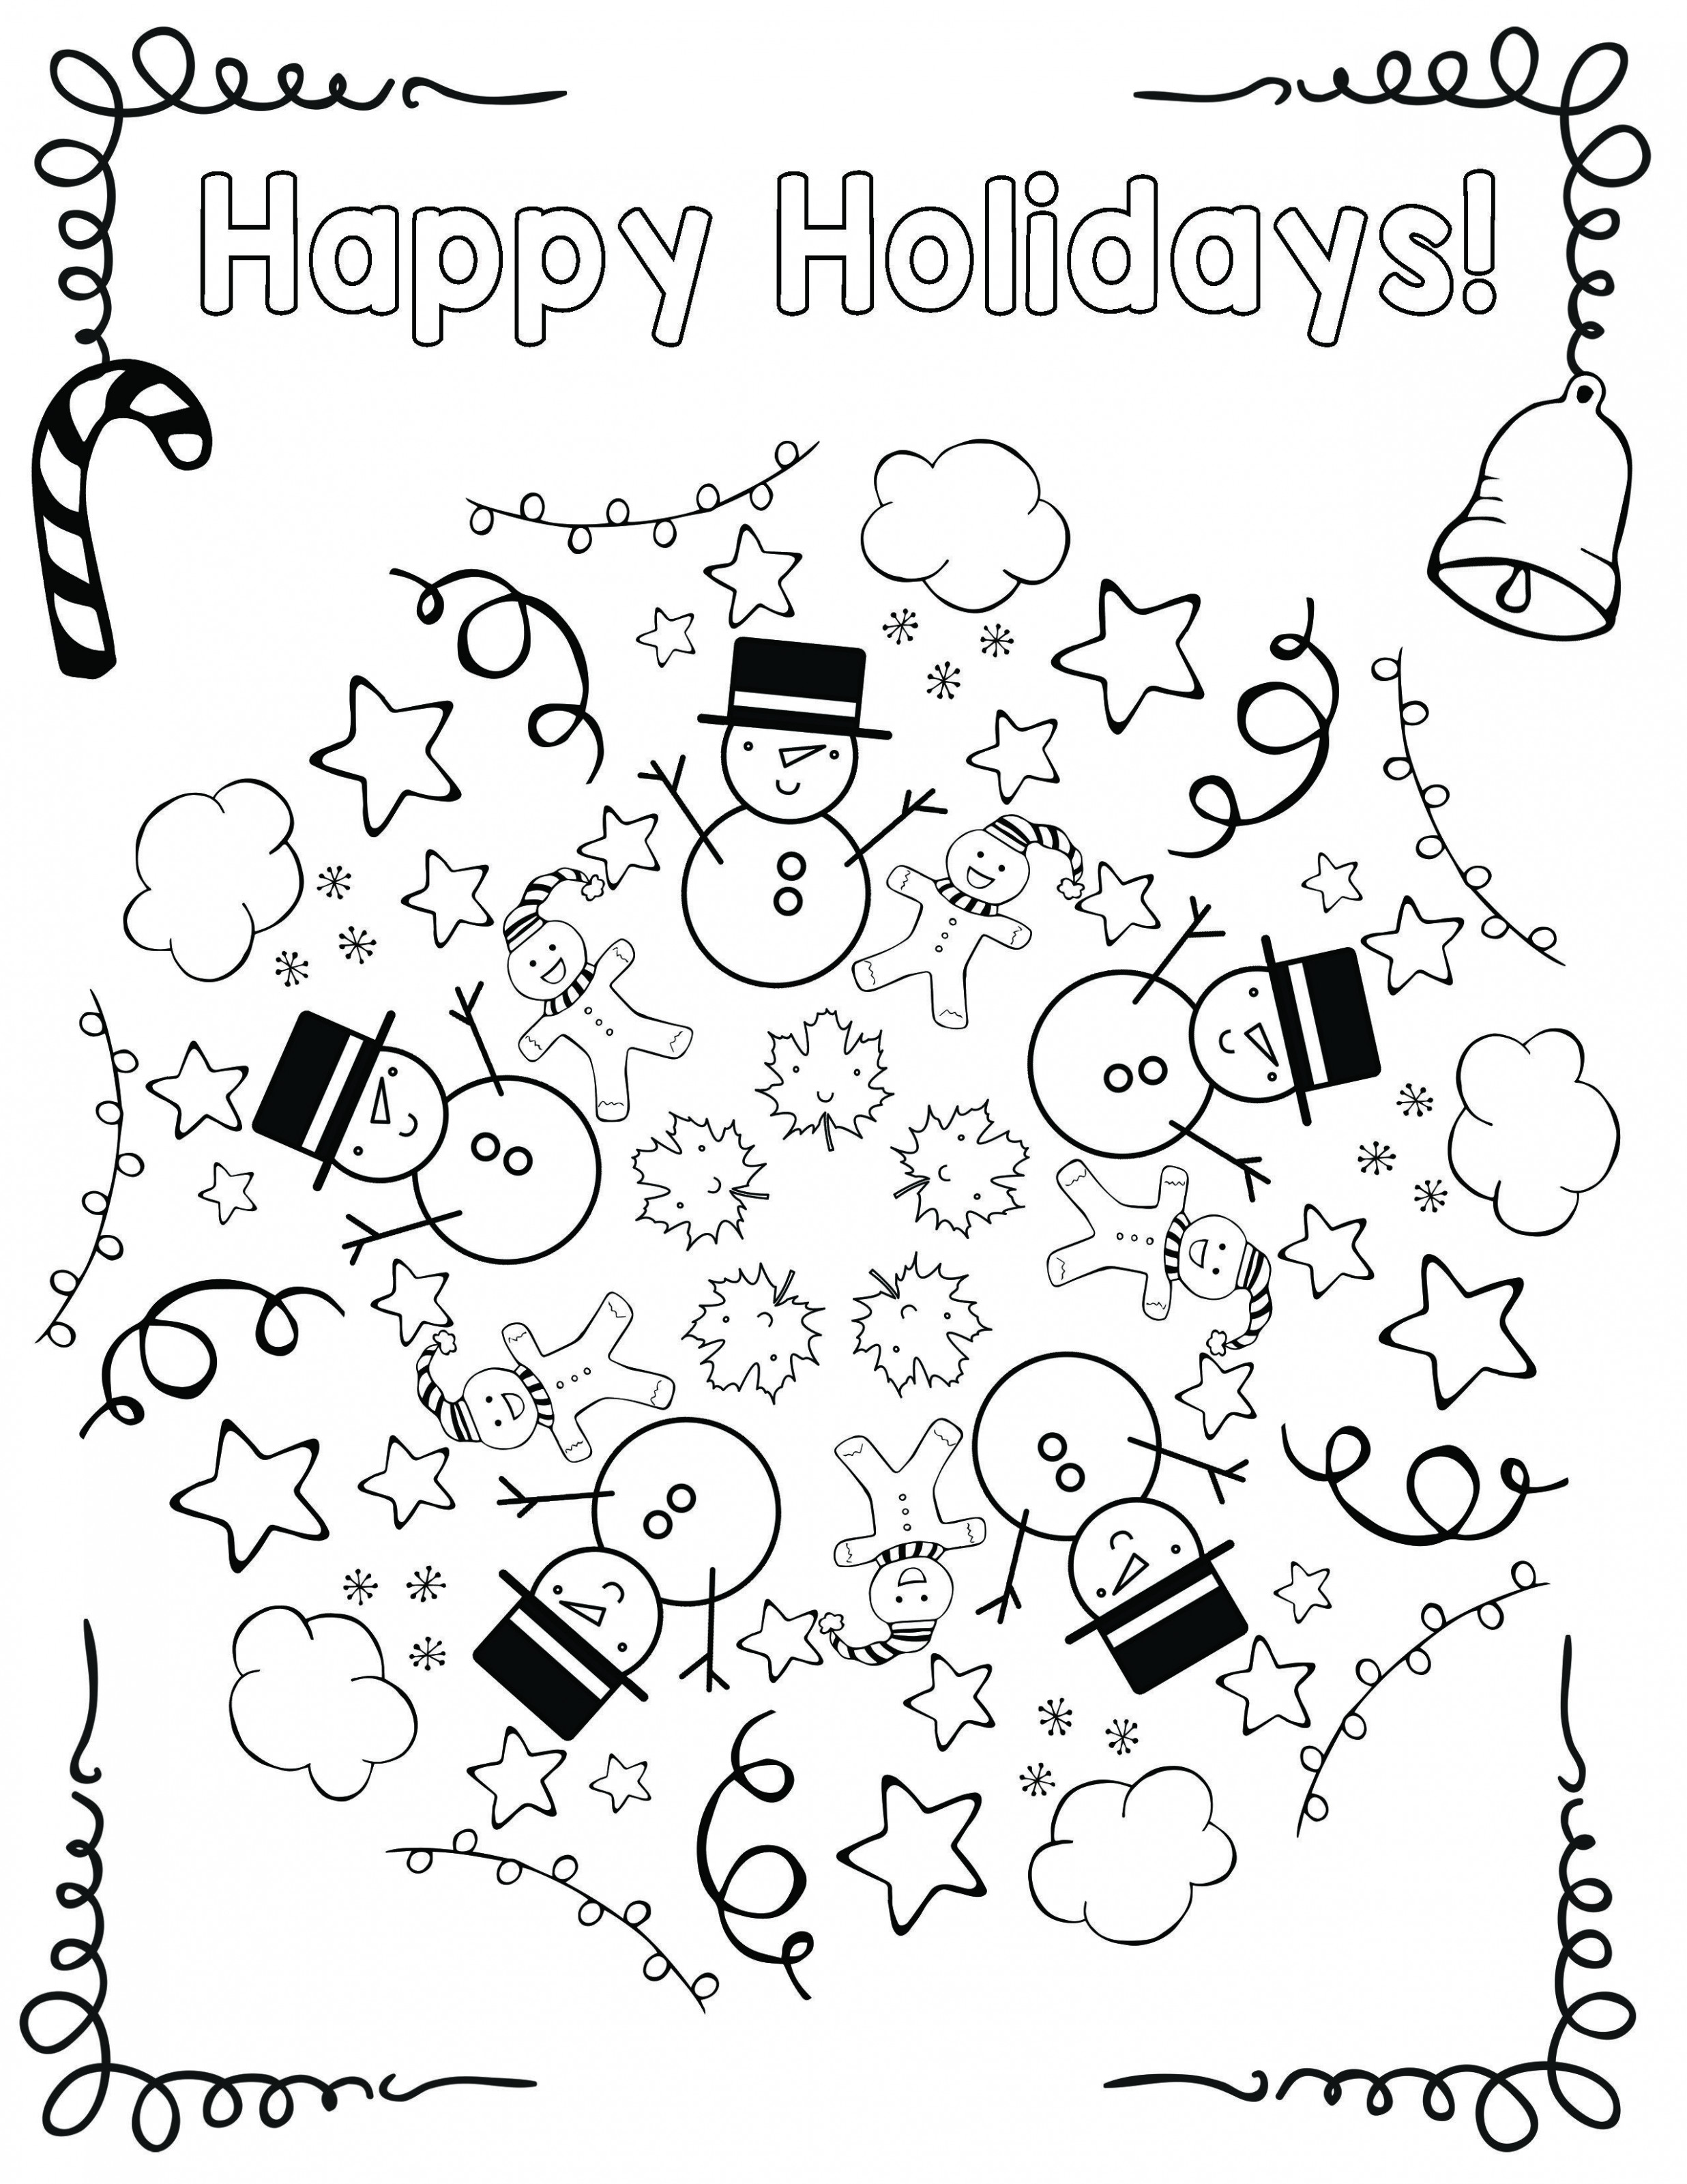 Free Holiday Coloring Mandala | Cool School Educational Ideas ..